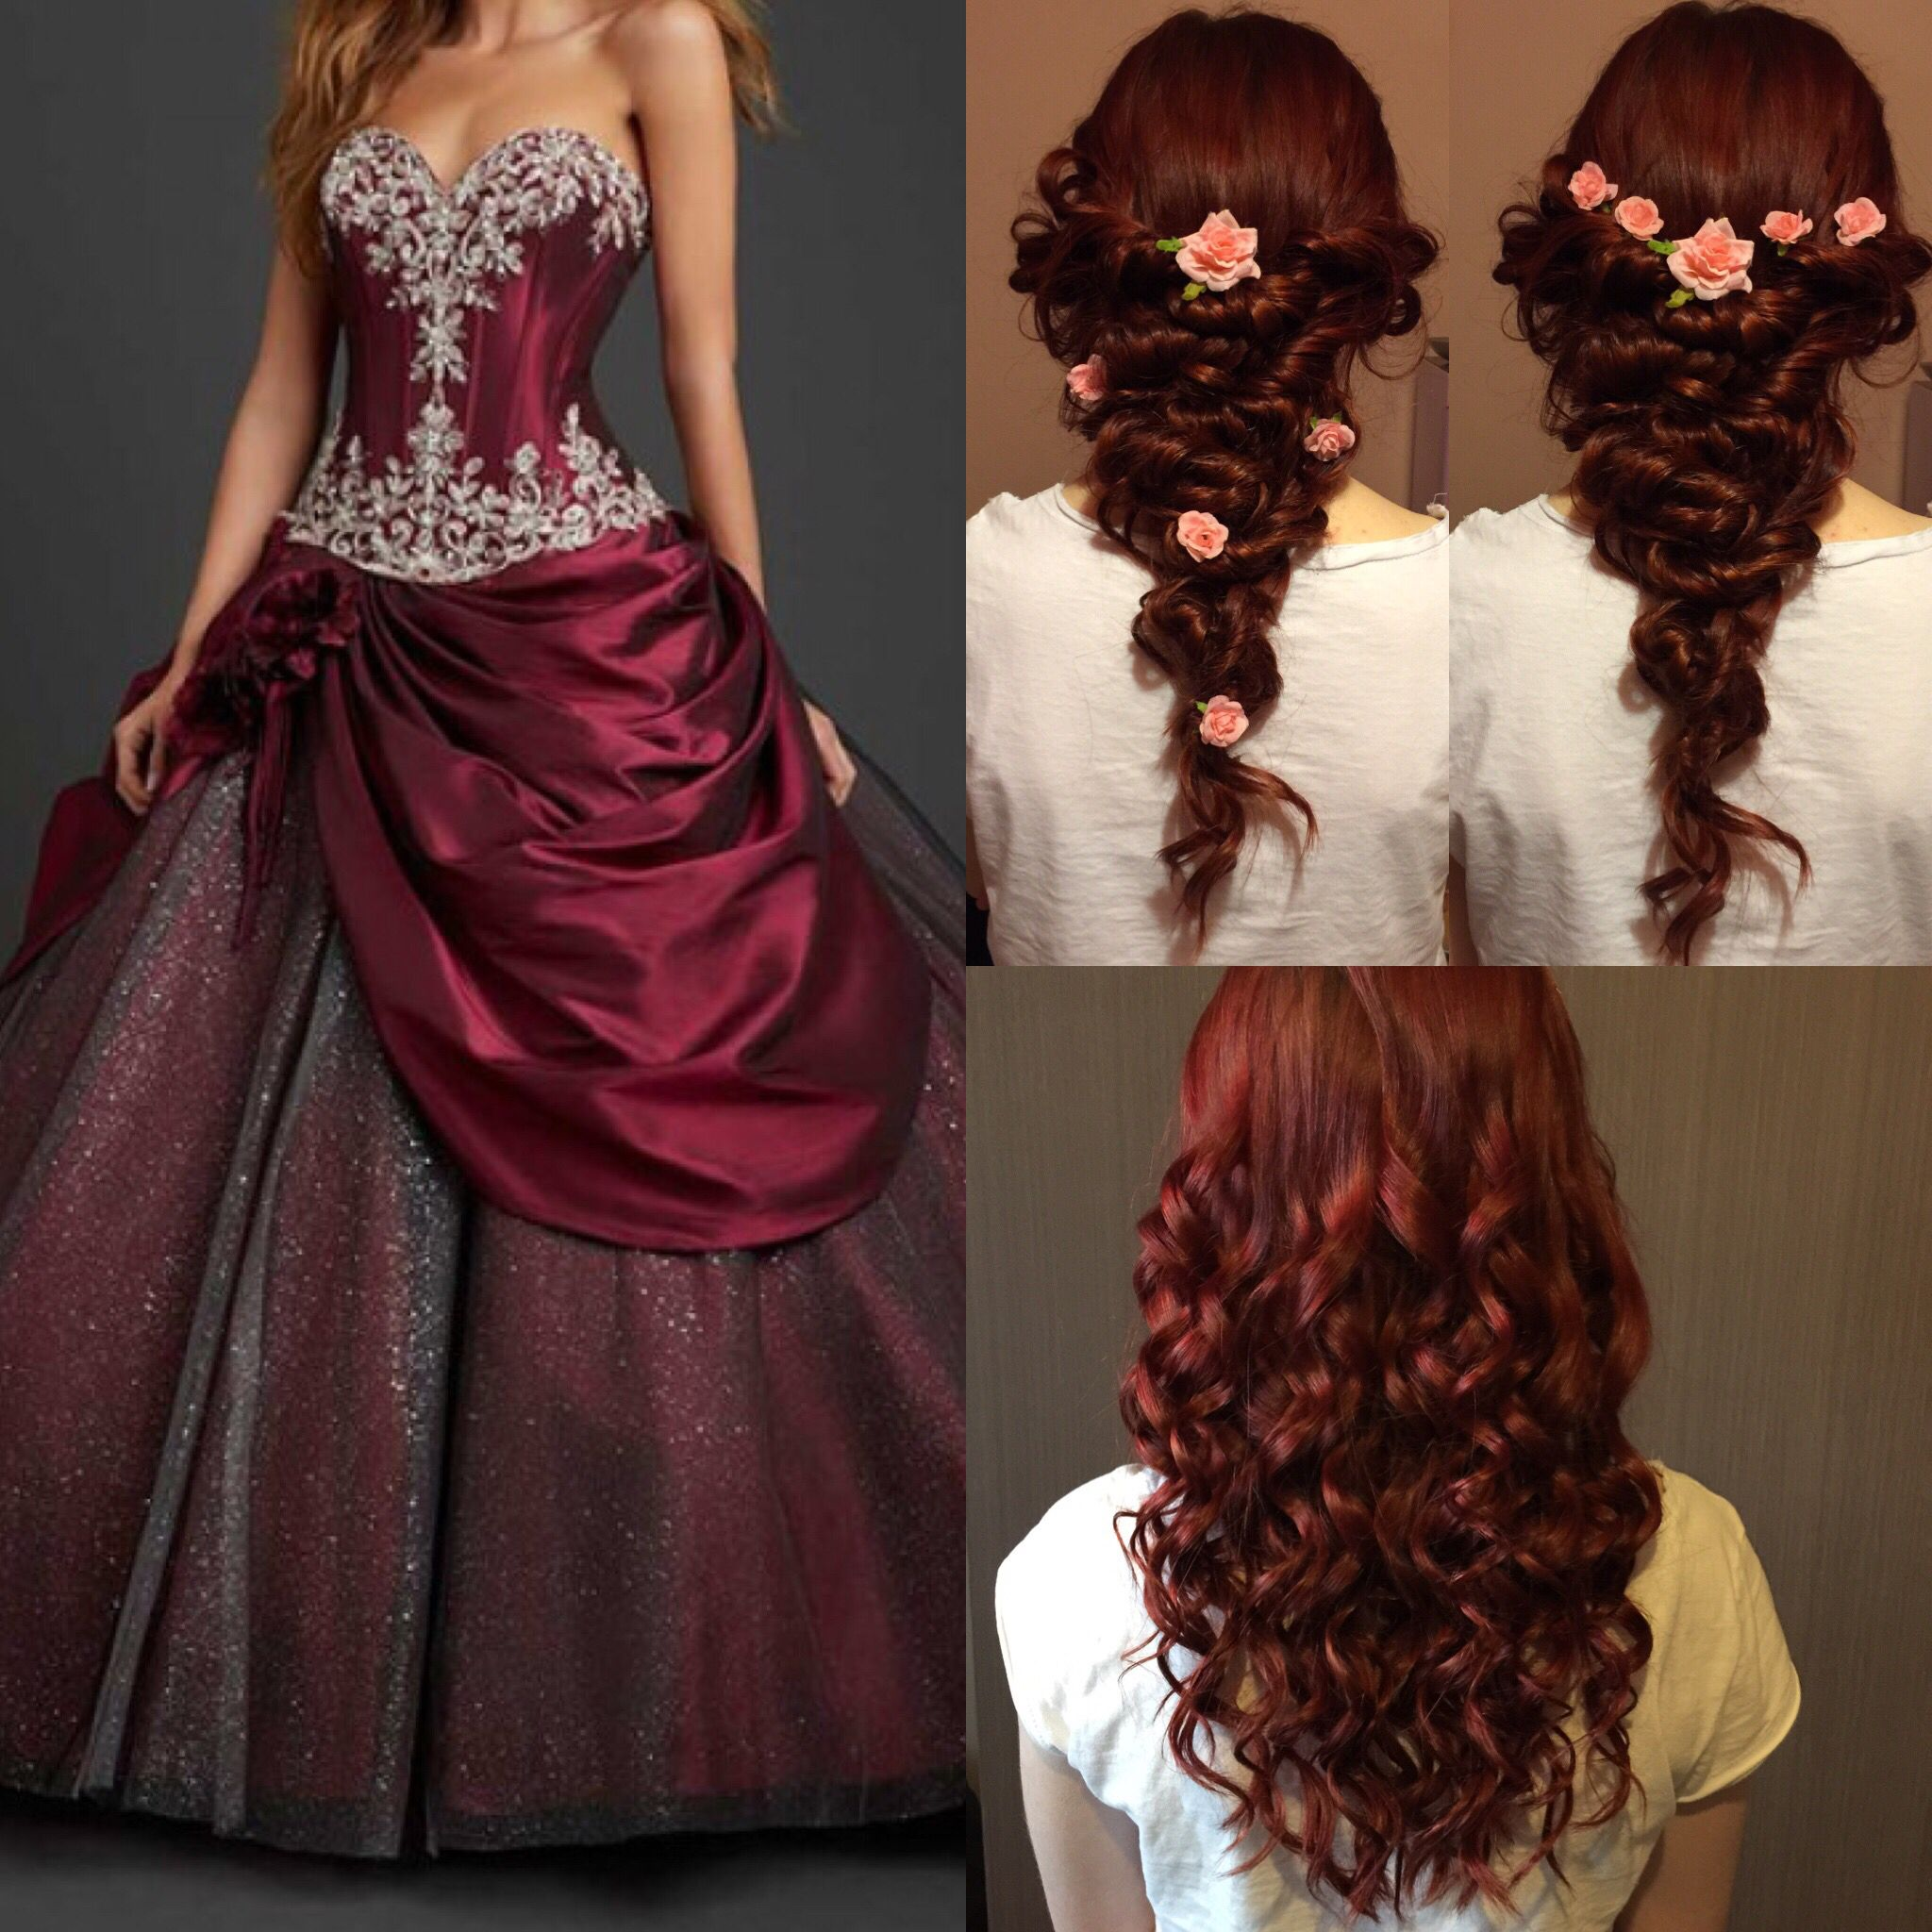 Hair Design For Prom Wedding Party My Hair Designs Hair